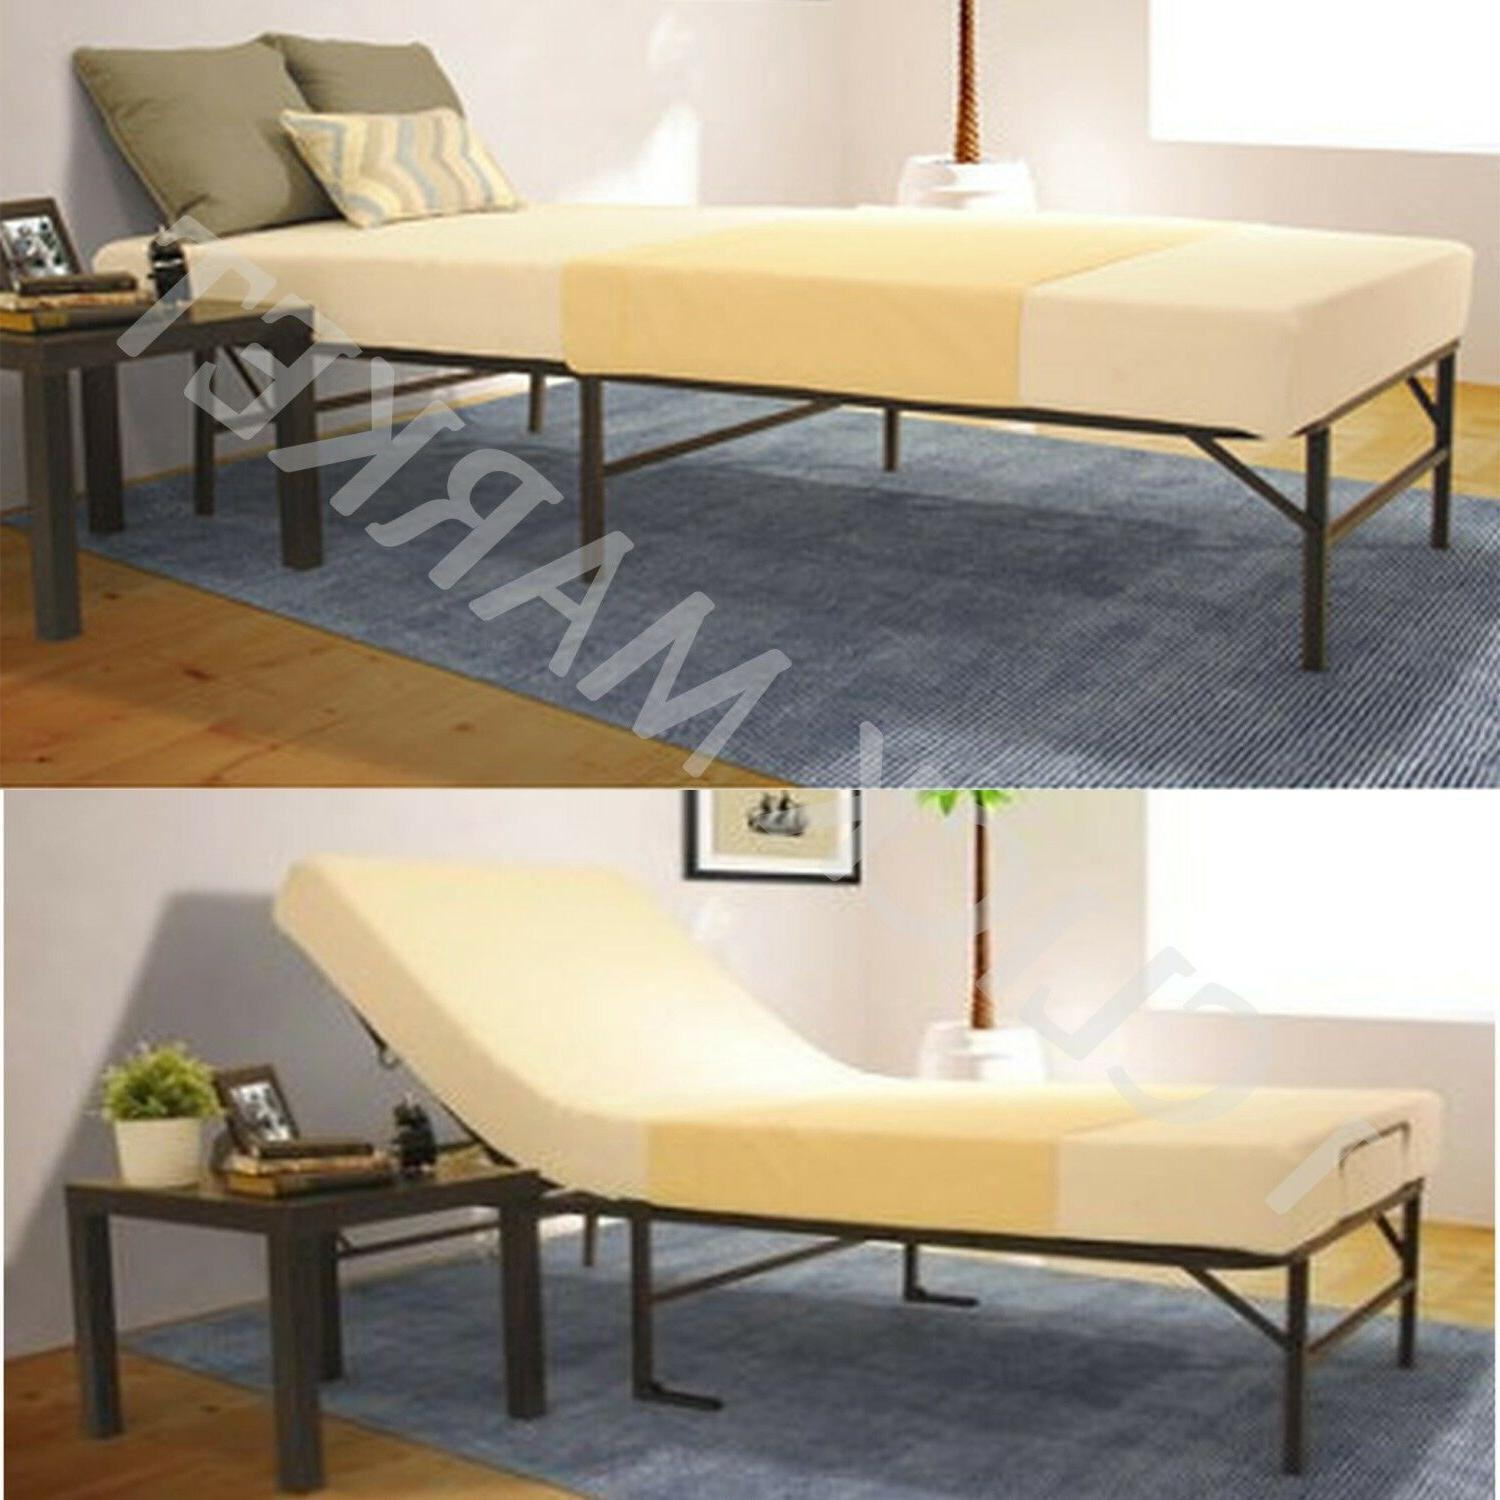 TWIN Size Frame Lift Furniture